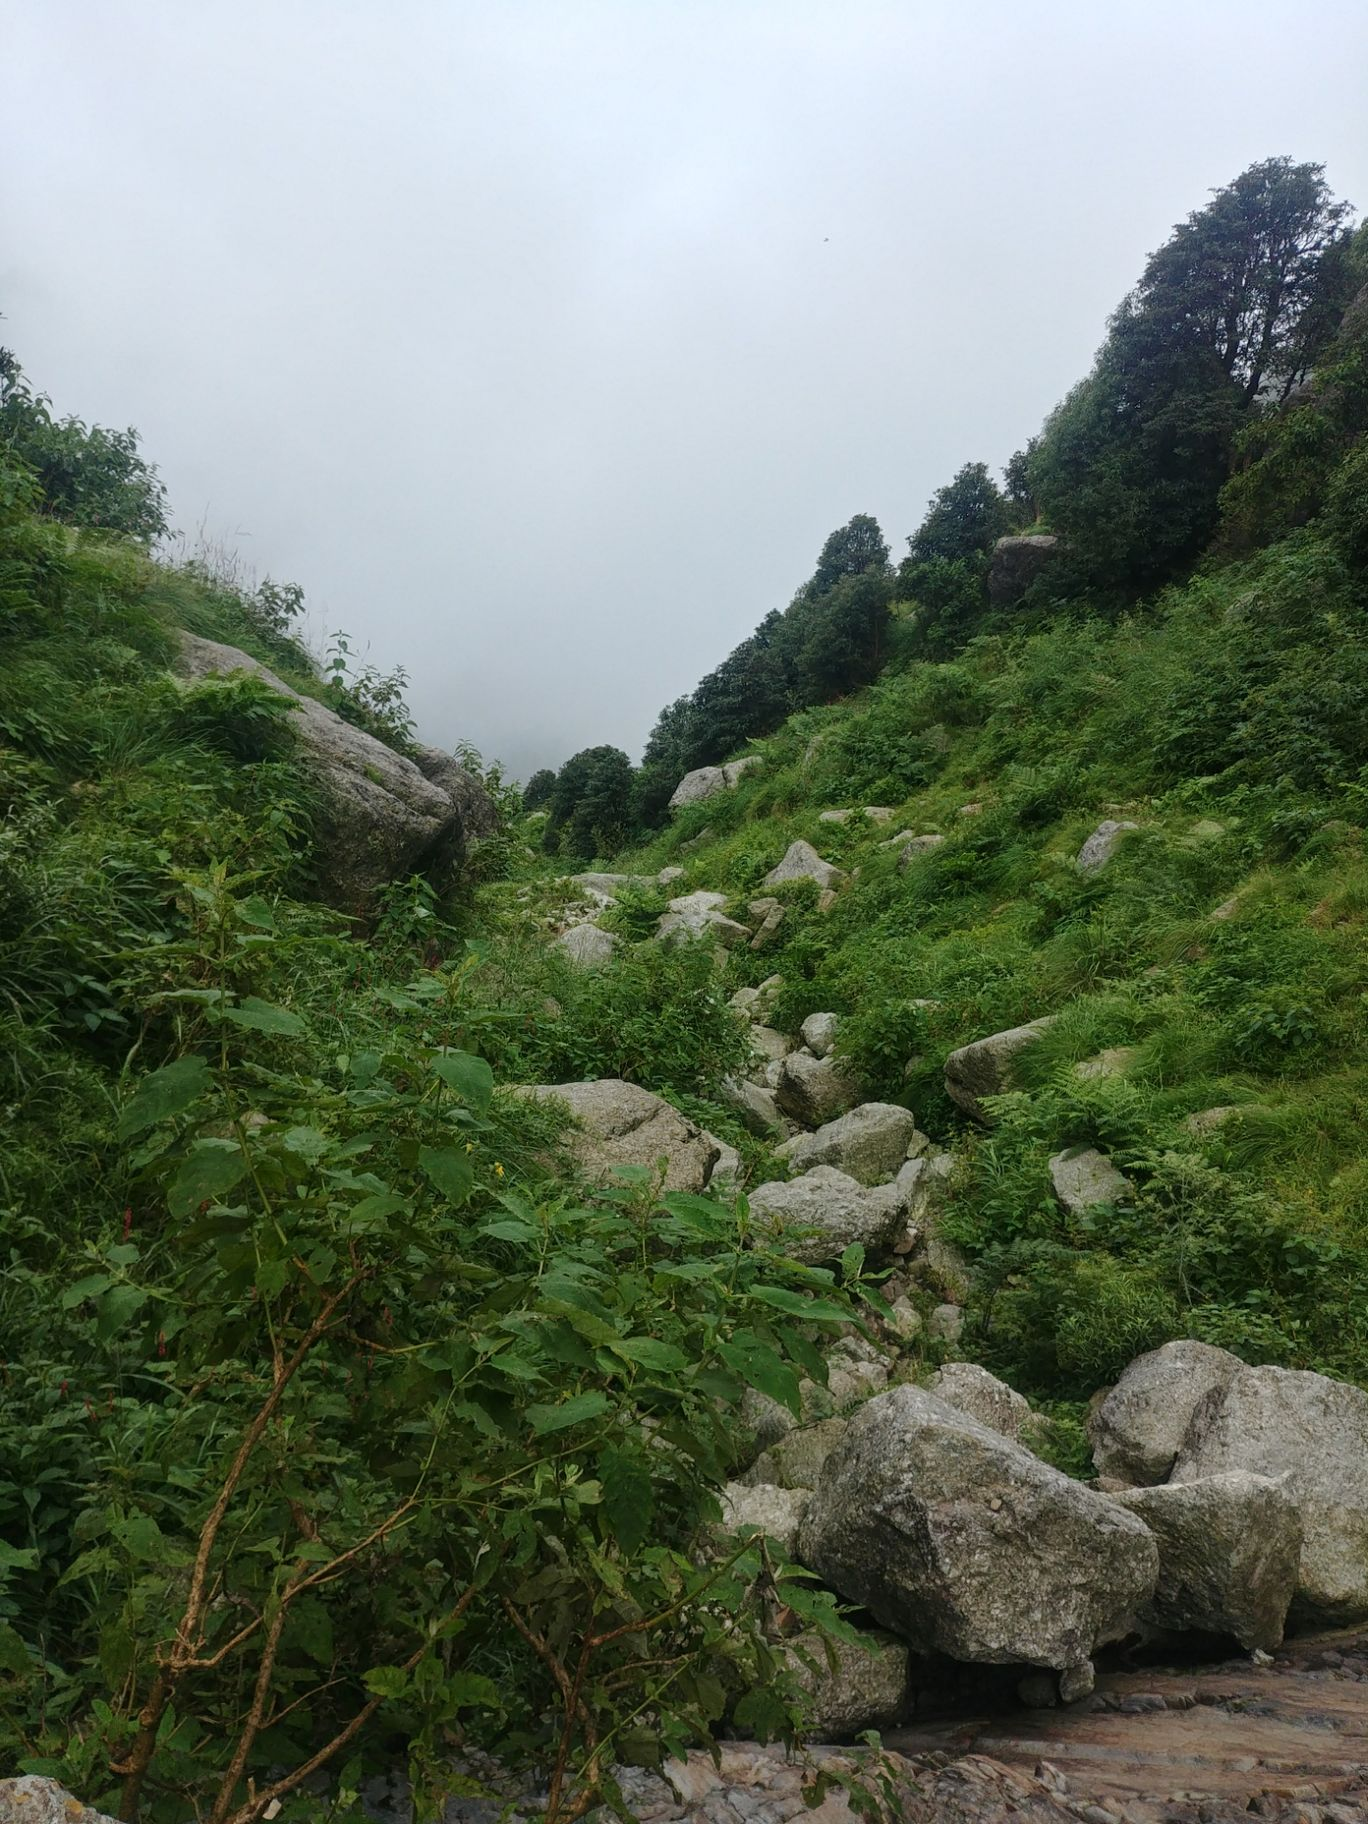 Photo of Triund Hill Trail from Bhagsunag Waterfall By Manav Dhull